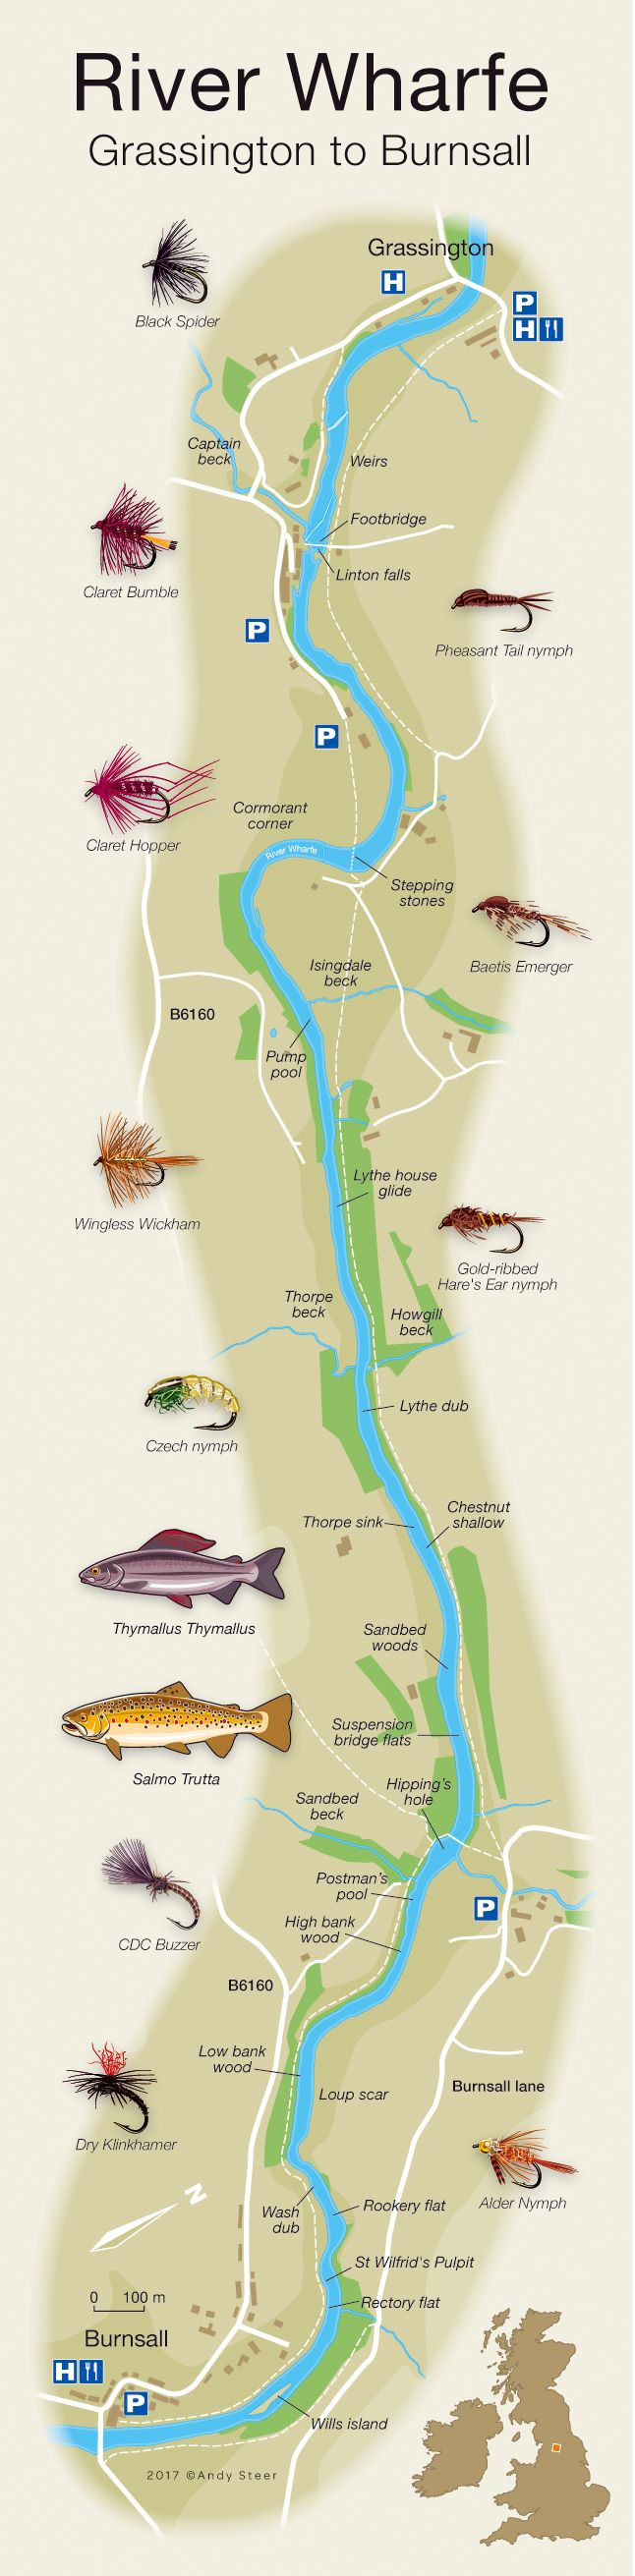 River Wharfe fishing map showing the named pools/beats and river access.